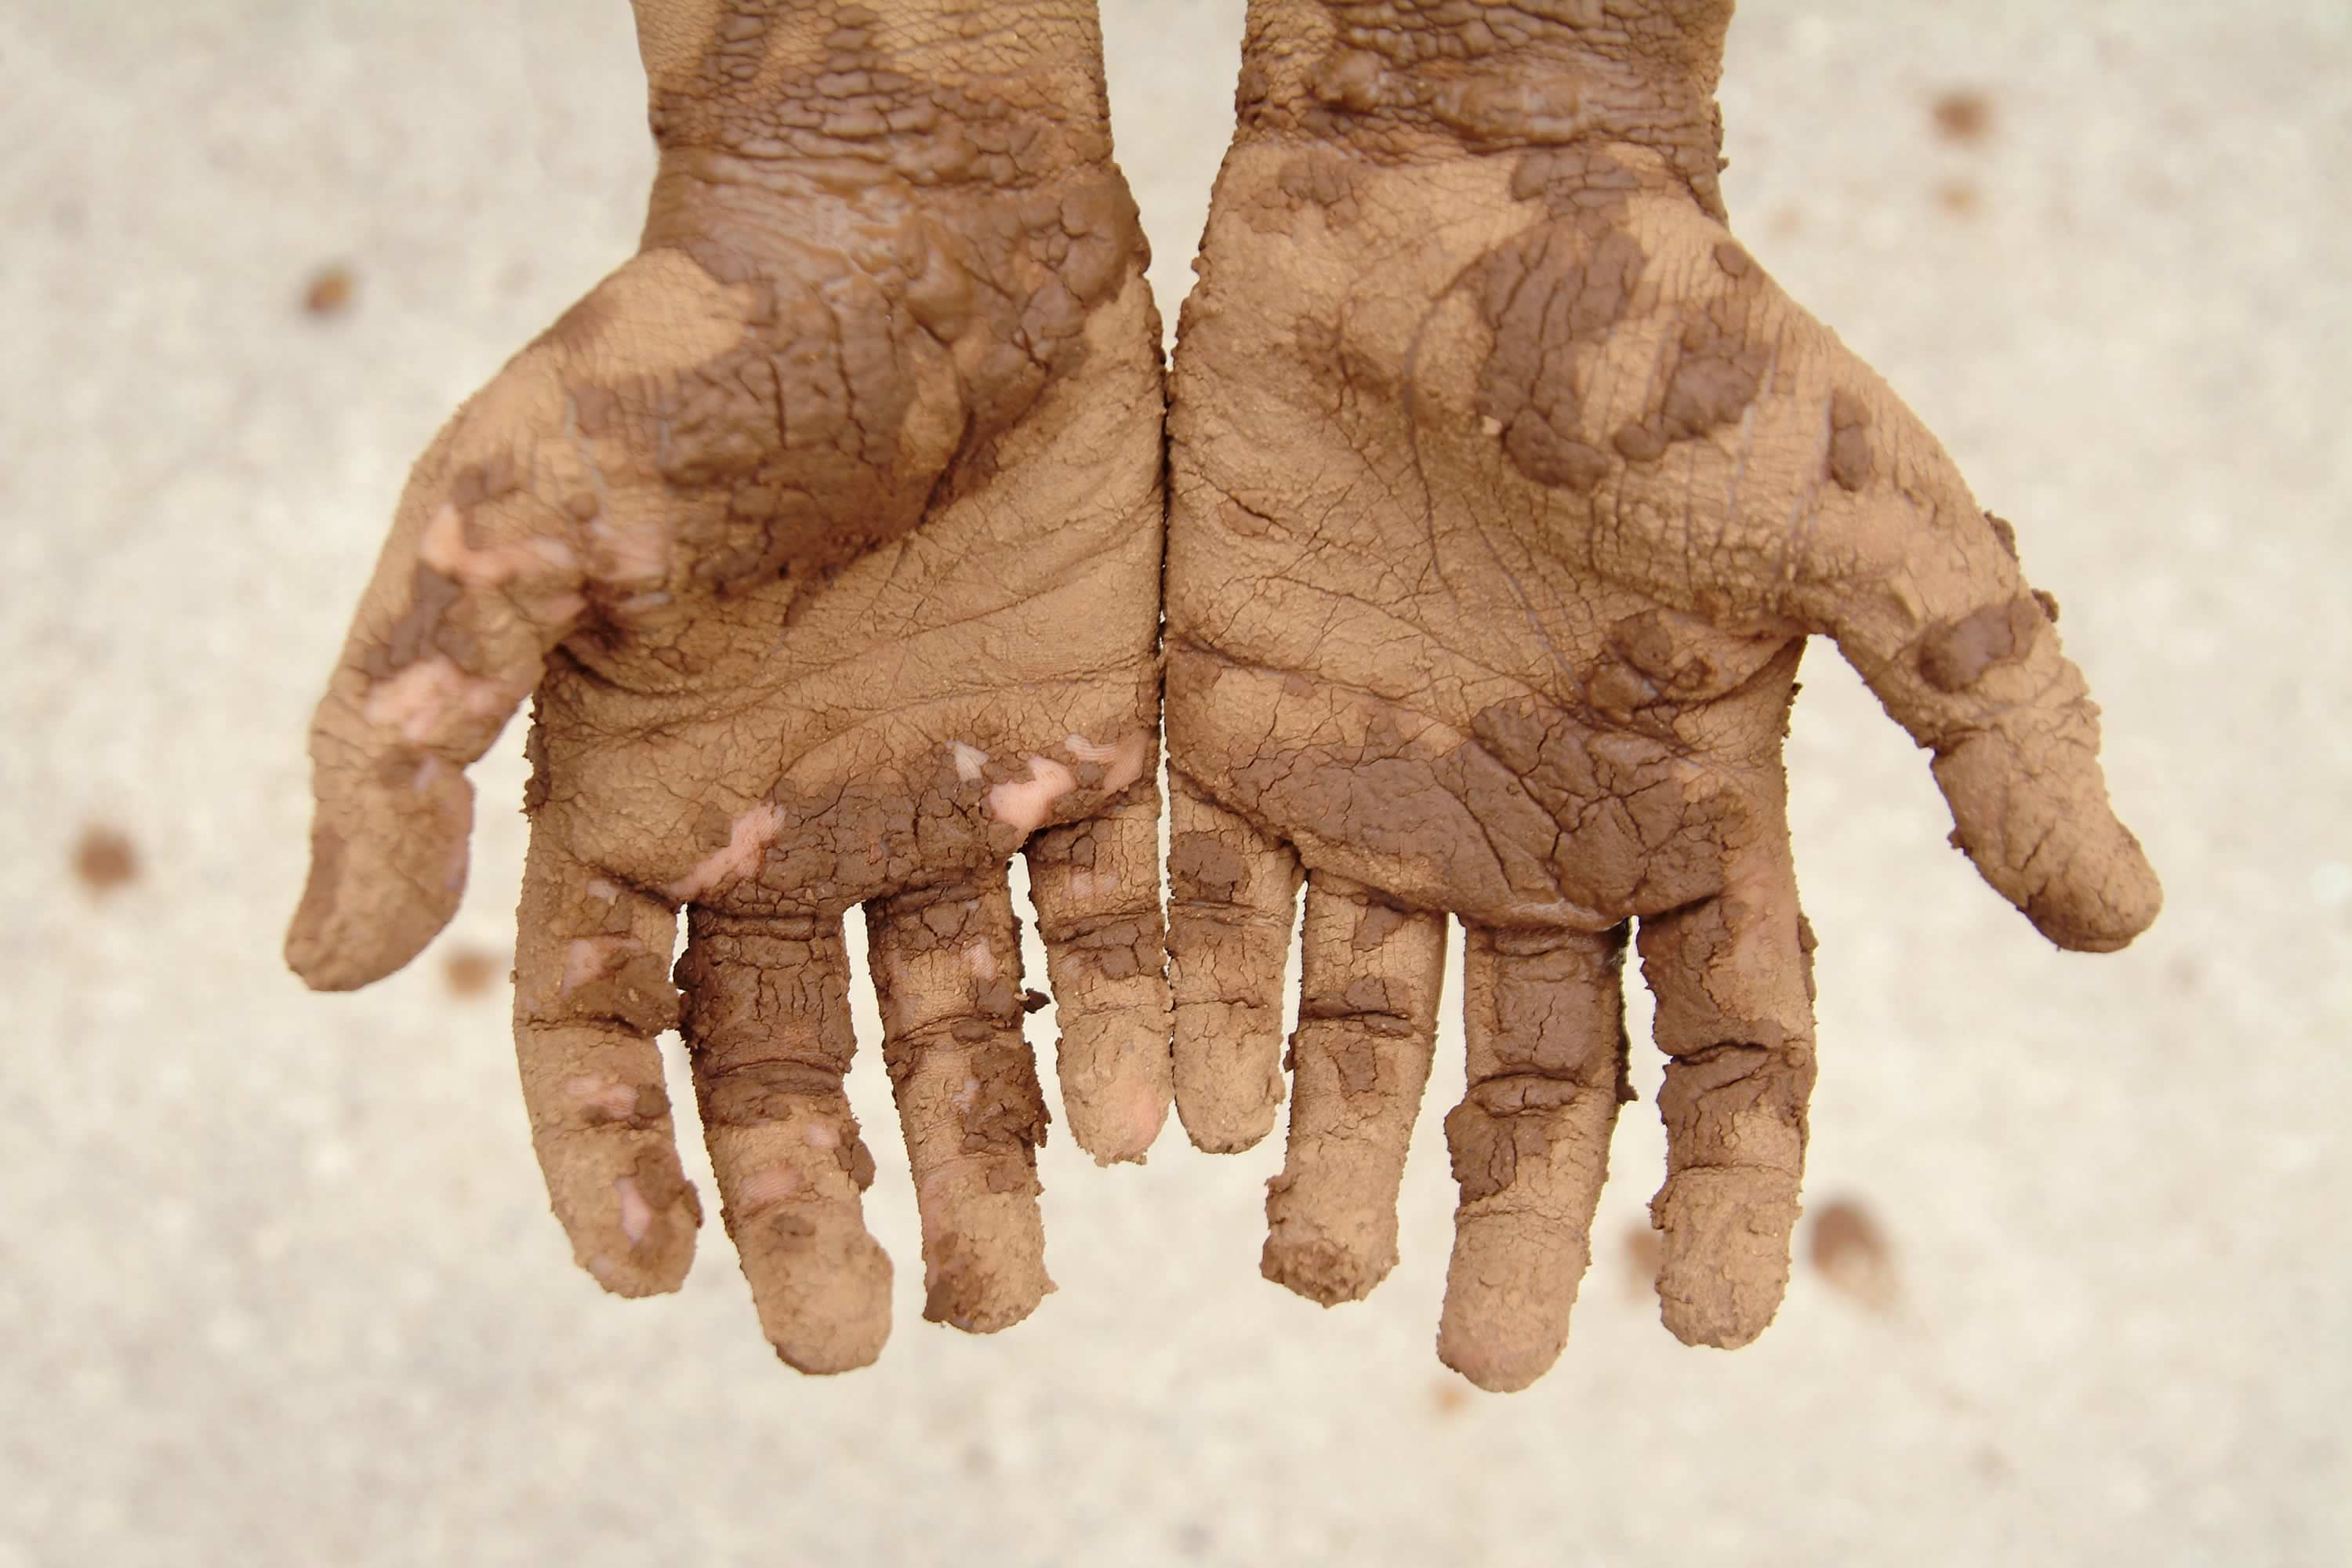 Outstretched hands covered in mud. Photo: iStock / Stephanie Phillips.